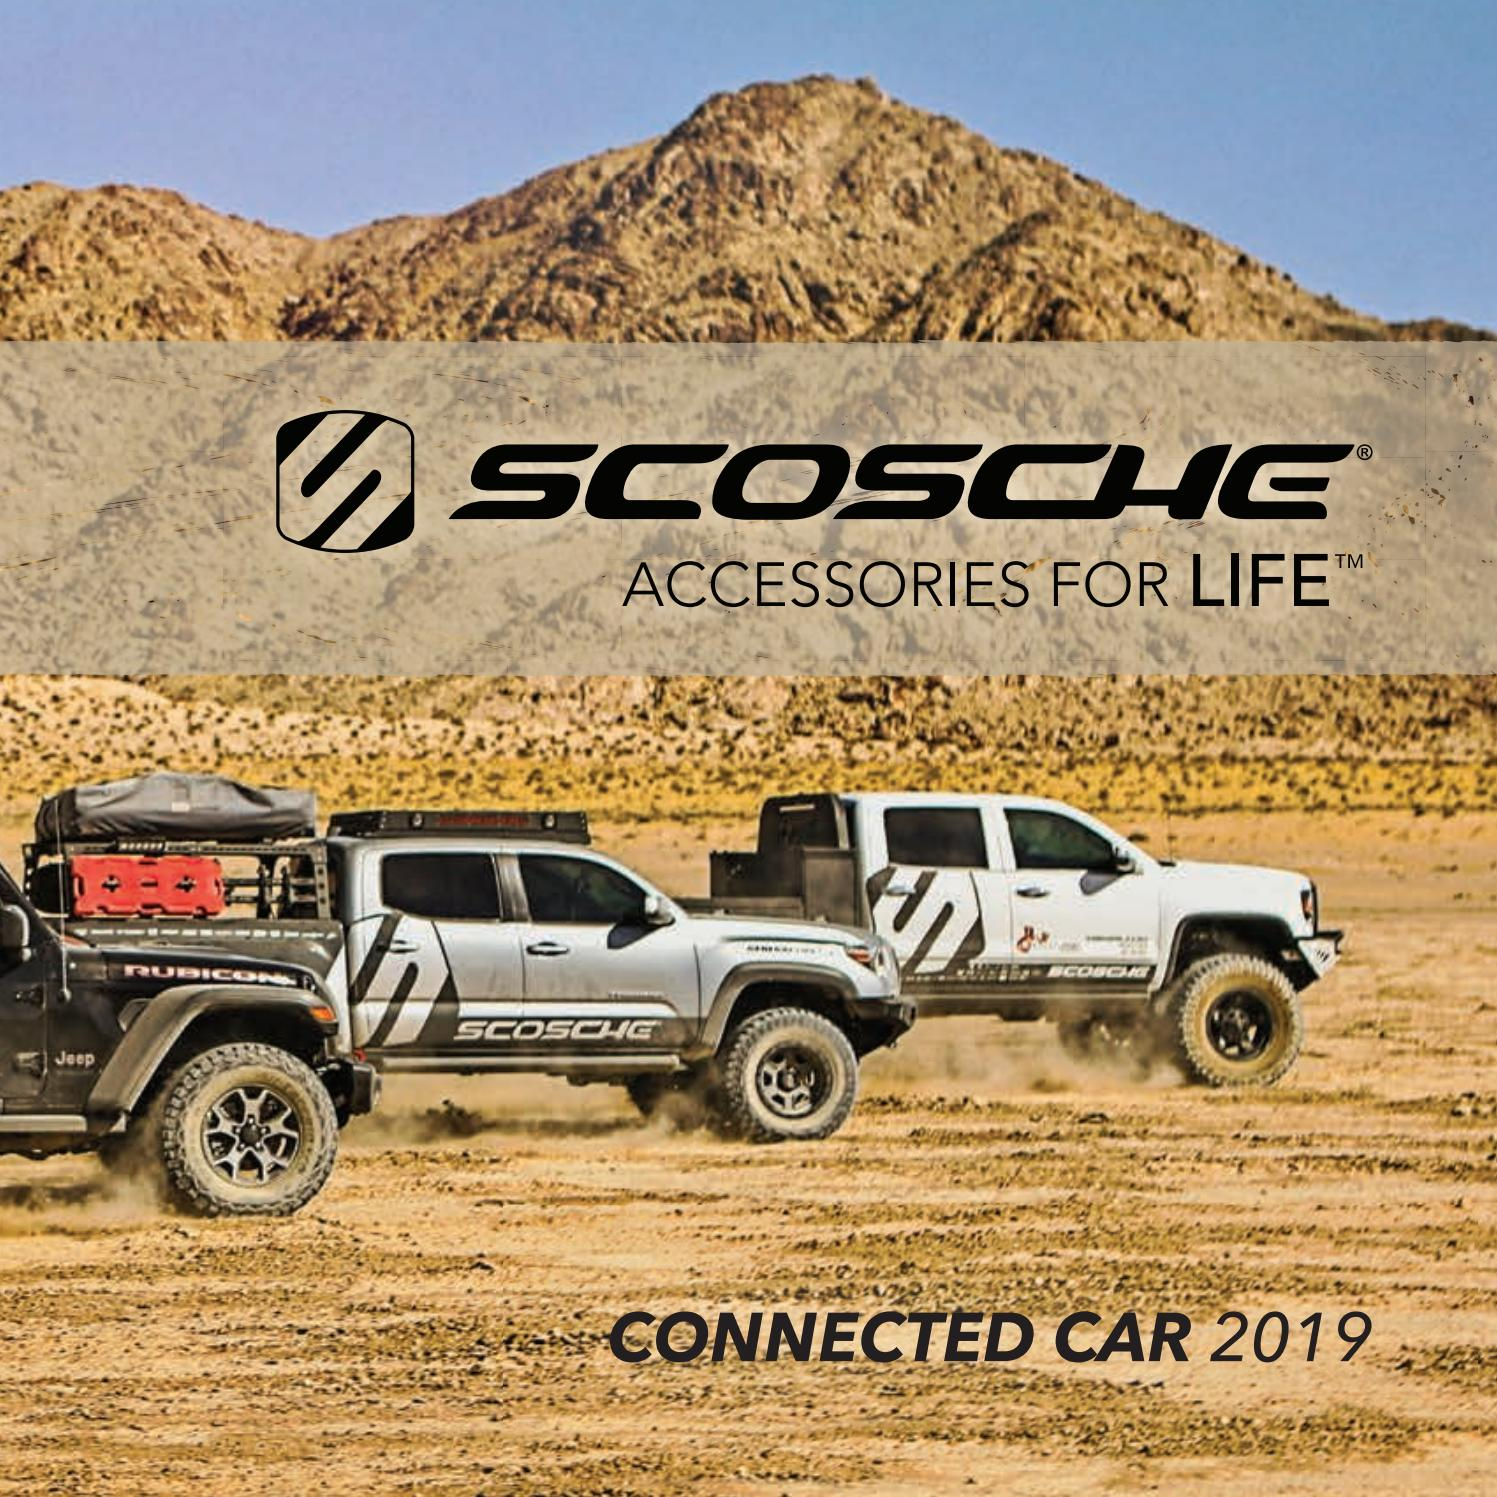 2019 Connected Car By Scosche Industries Issuu Gmda Wiring Harness Color Code